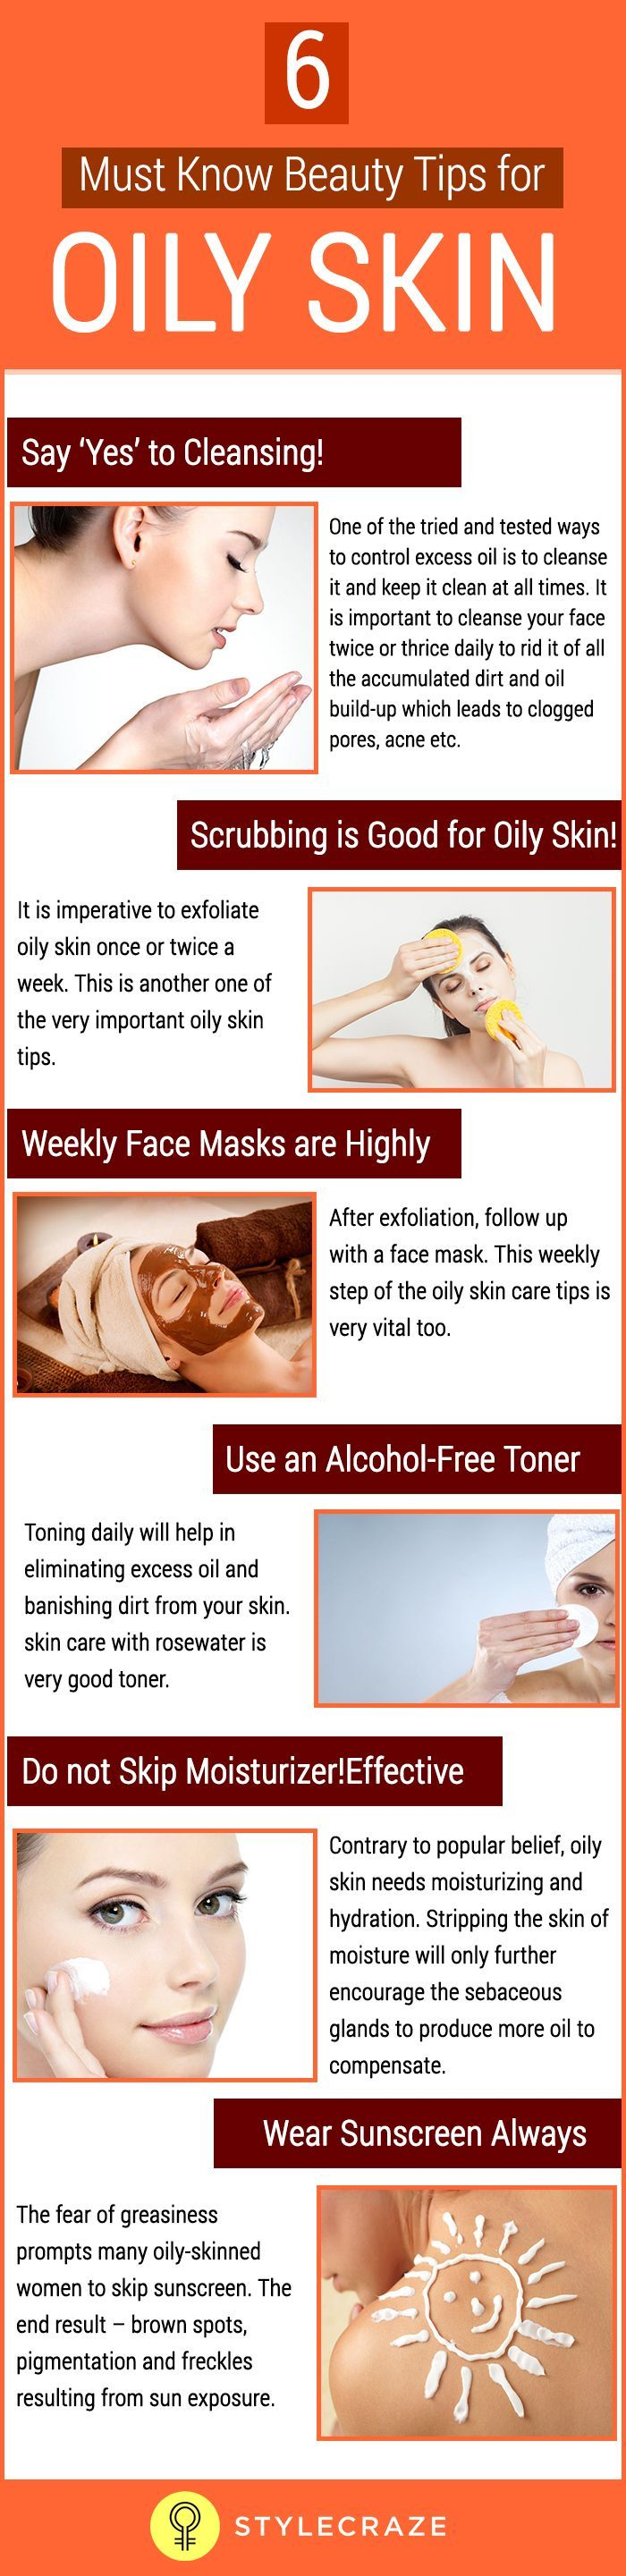 Oily skin can take you through tough times as the sebaceous glands are over-acti... - http://www.usatimeoffer.com/BestSkinCareTipsBlog/oily-skin-can-take-you-through-tough-times-as-the-sebaceous-glands-are-over-acti/  #SkinCare #SkinCareTips #AntiAging